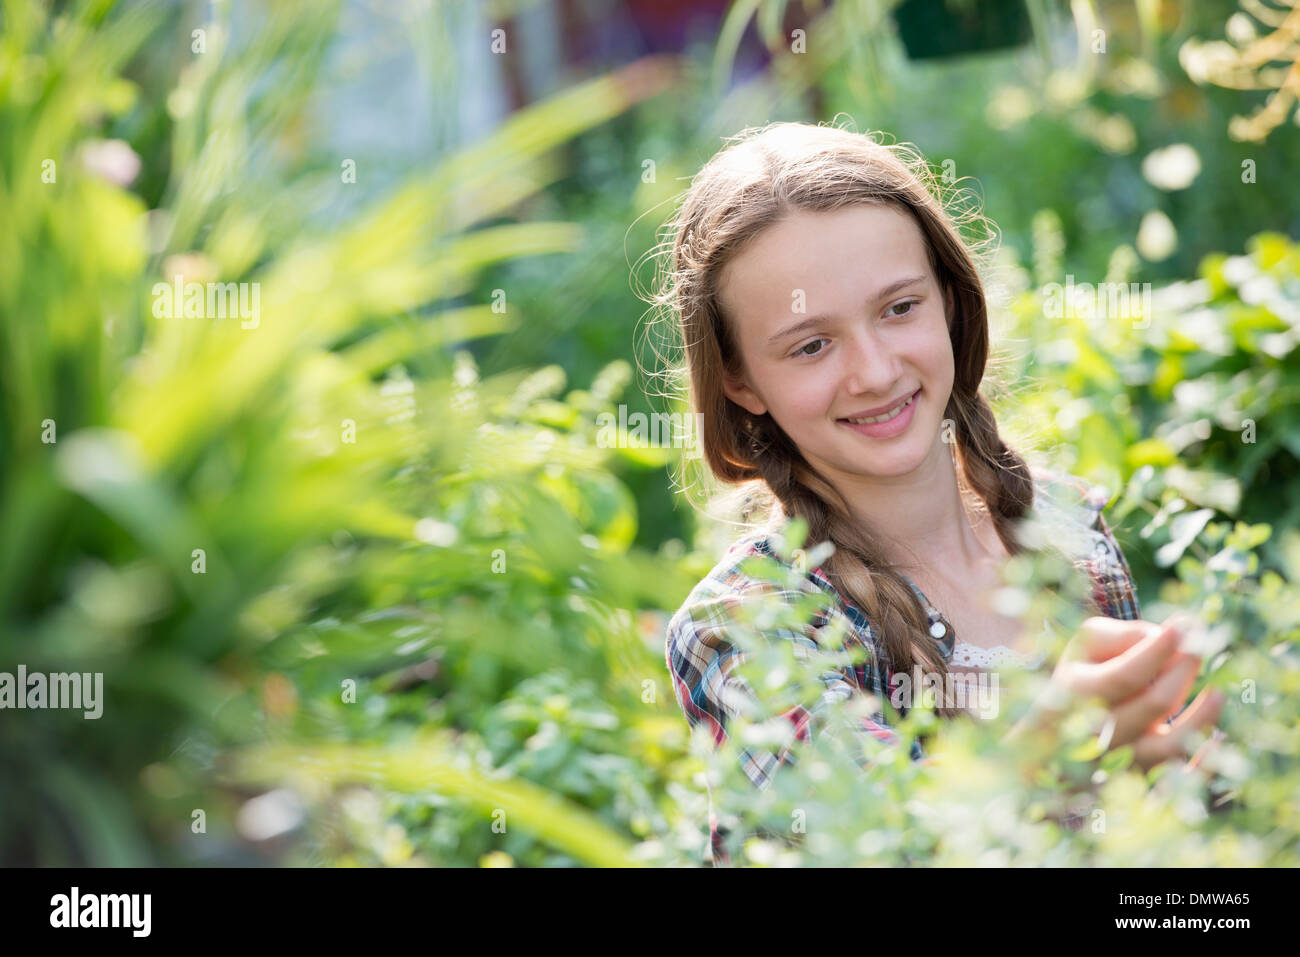 Summer on an organic farm. A young girl in a plant nursery full of flowers. - Stock Image